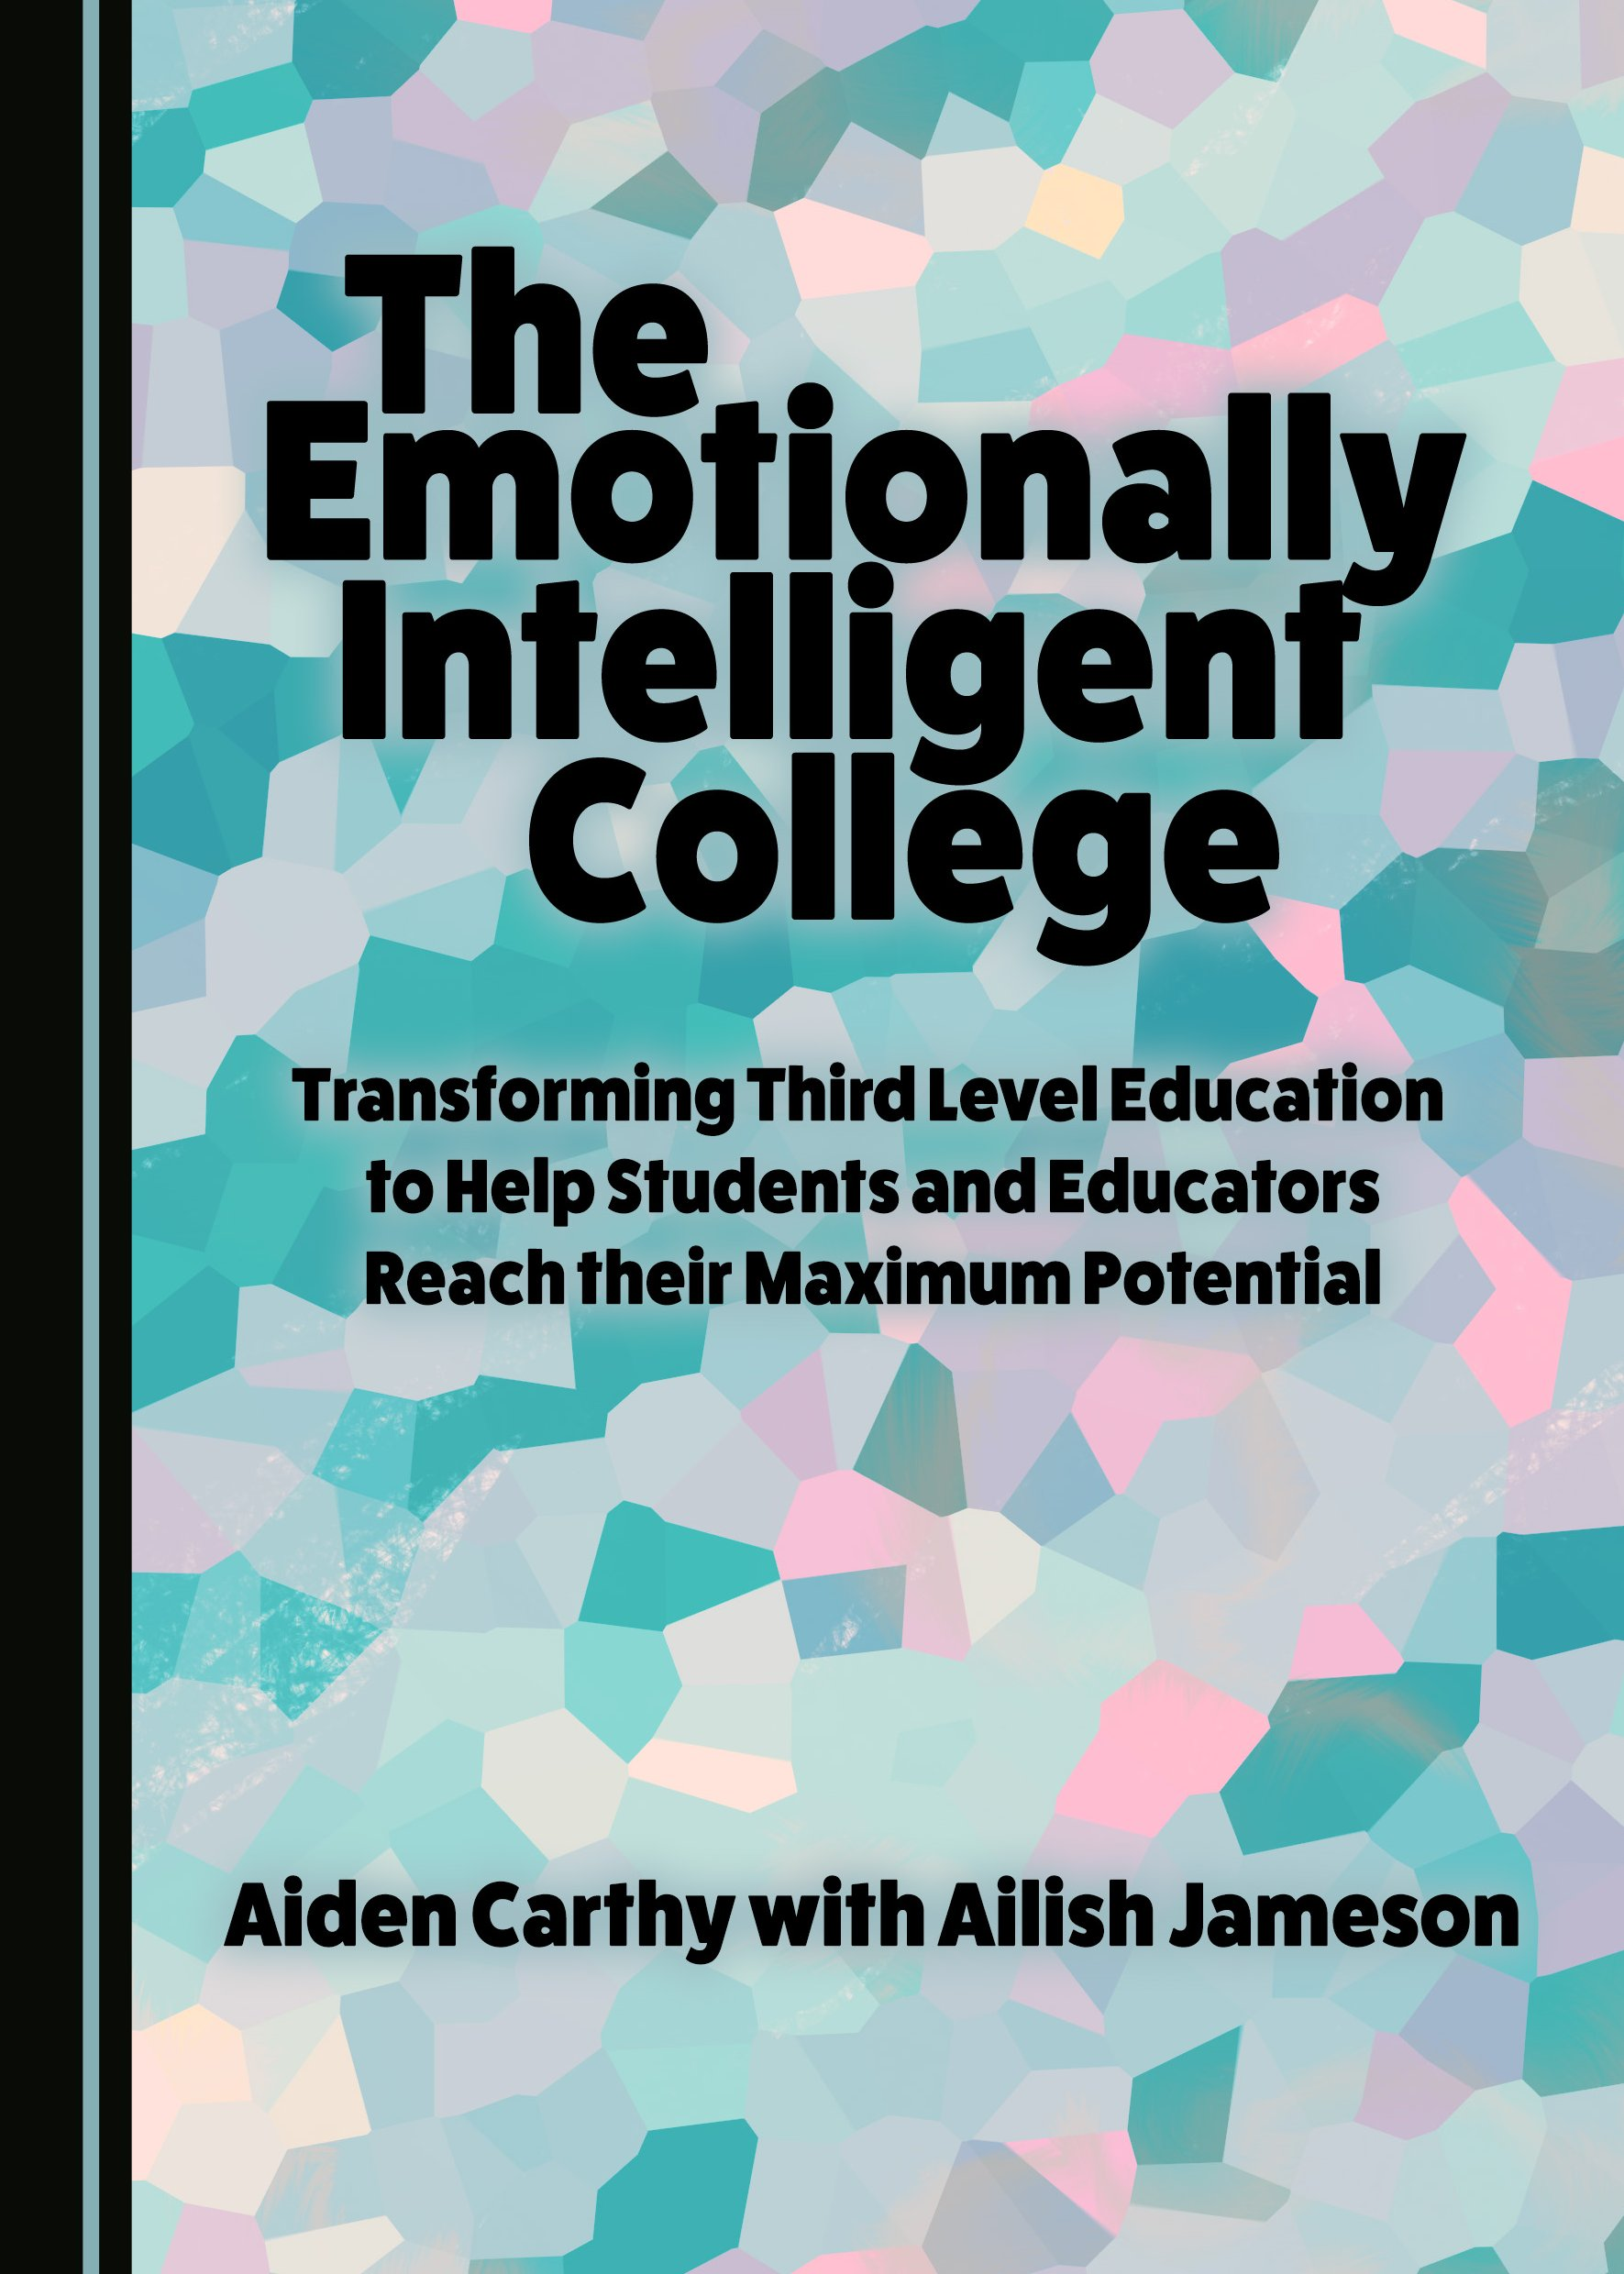 The Emotionally Intelligent College: Transforming Third Level Education to Help Students and Educators Reach their Maximum Potential